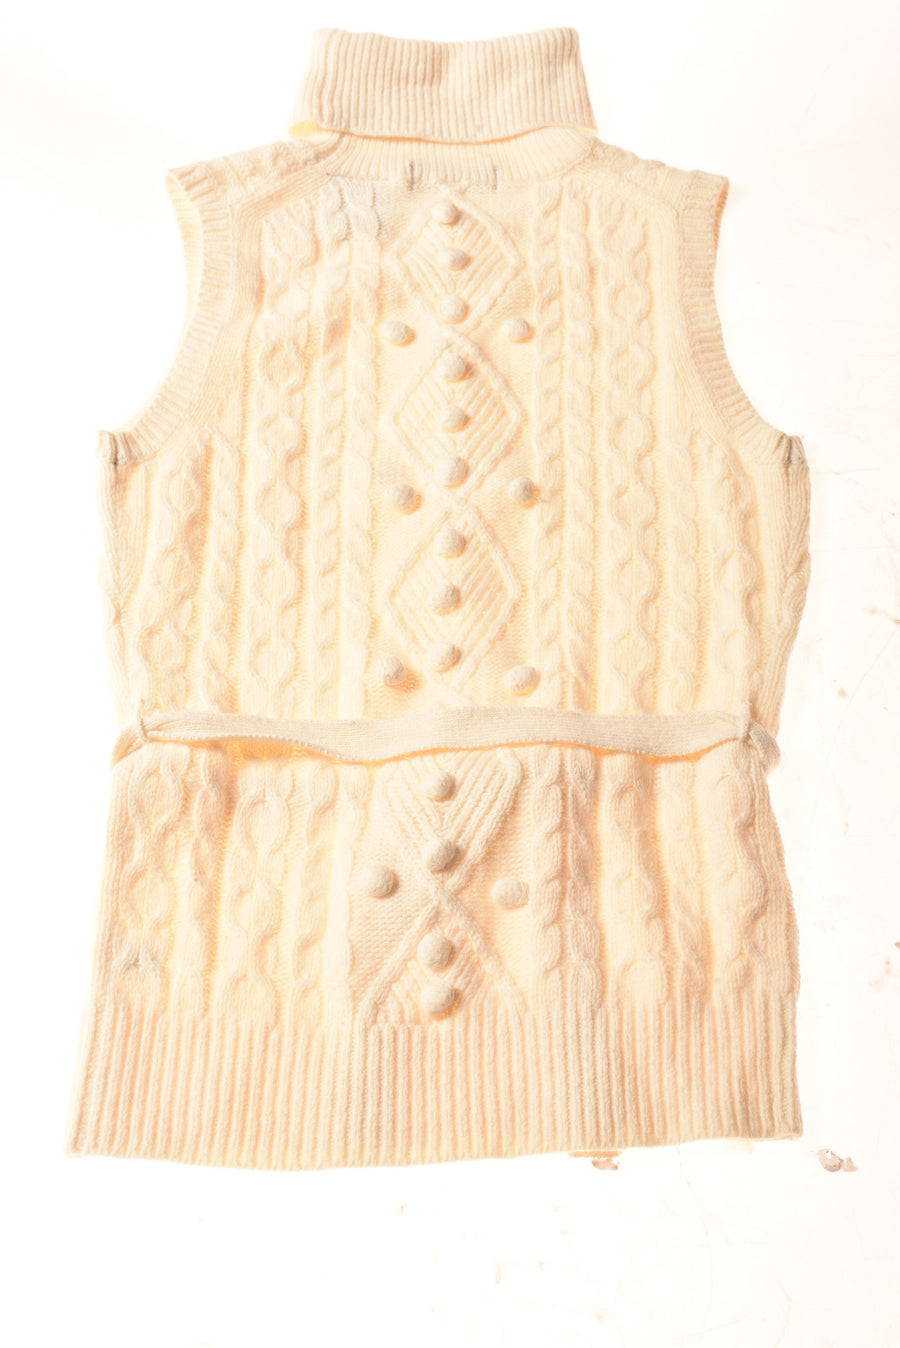 USED George Women's Sweater X-Small Ivory